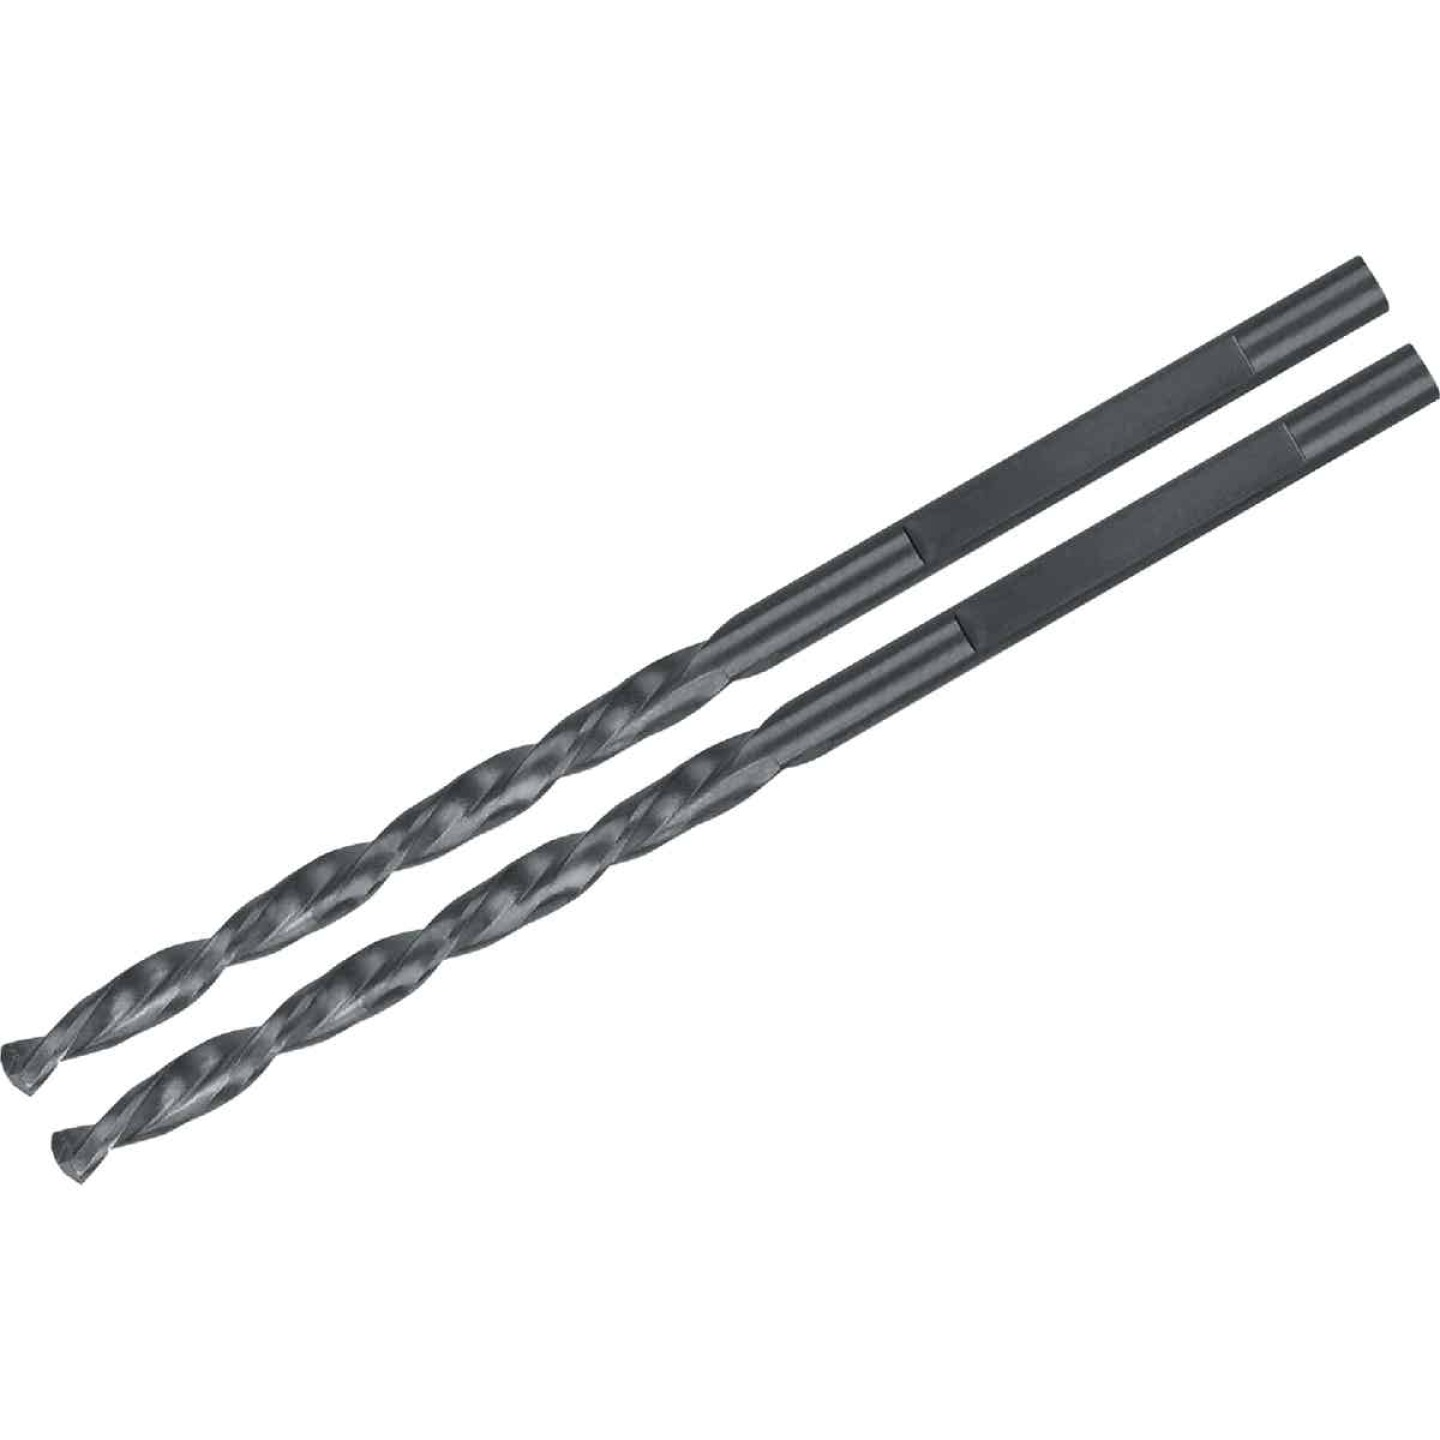 DeWalt #8 Black Oxide Drill & Drive Replacement Drill Bit (2-Pack) Image 1